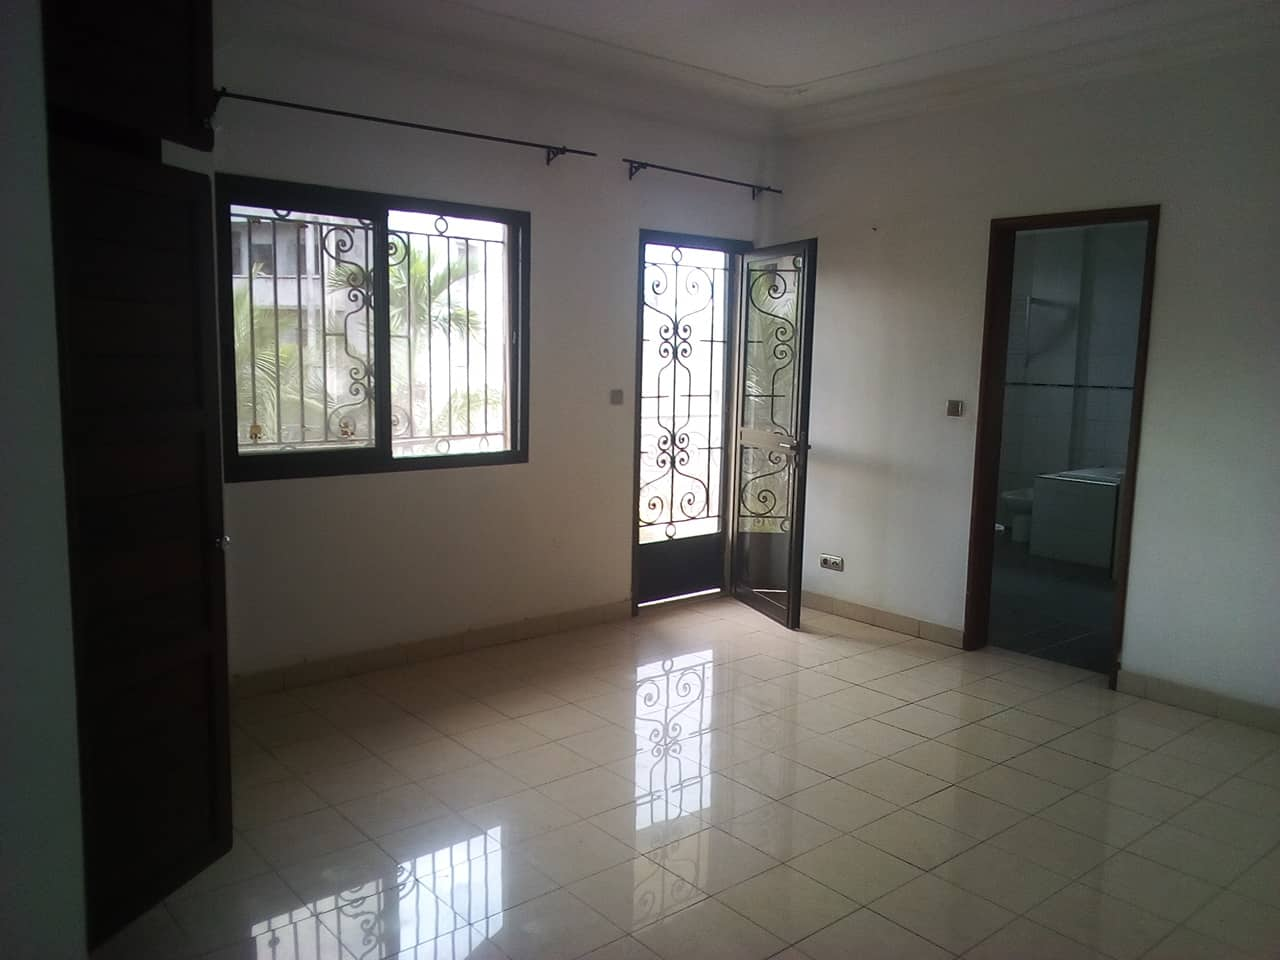 Apartment to rent - Yaoundé, Bastos, vers le pnud - 1 living room(s), 3 bedroom(s), 4 bathroom(s) - 700 000 FCFA / month